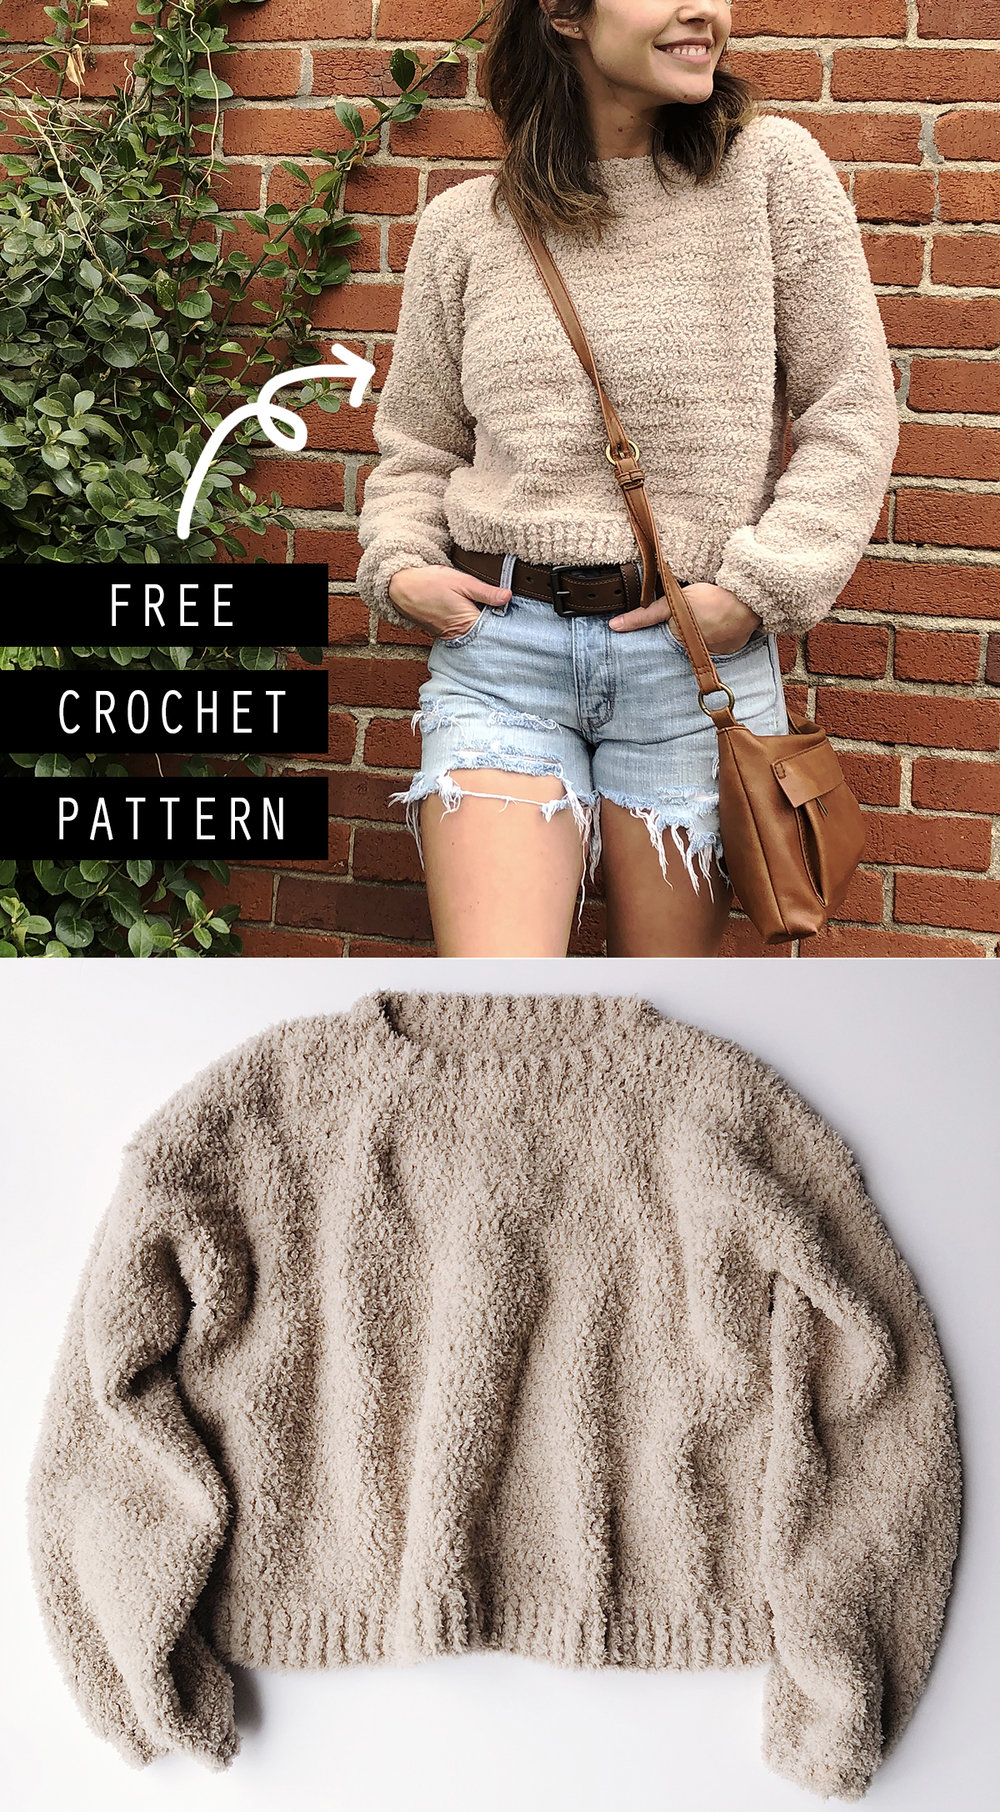 Cropped Crochet Sweater Free Pattern - Megmade with Love